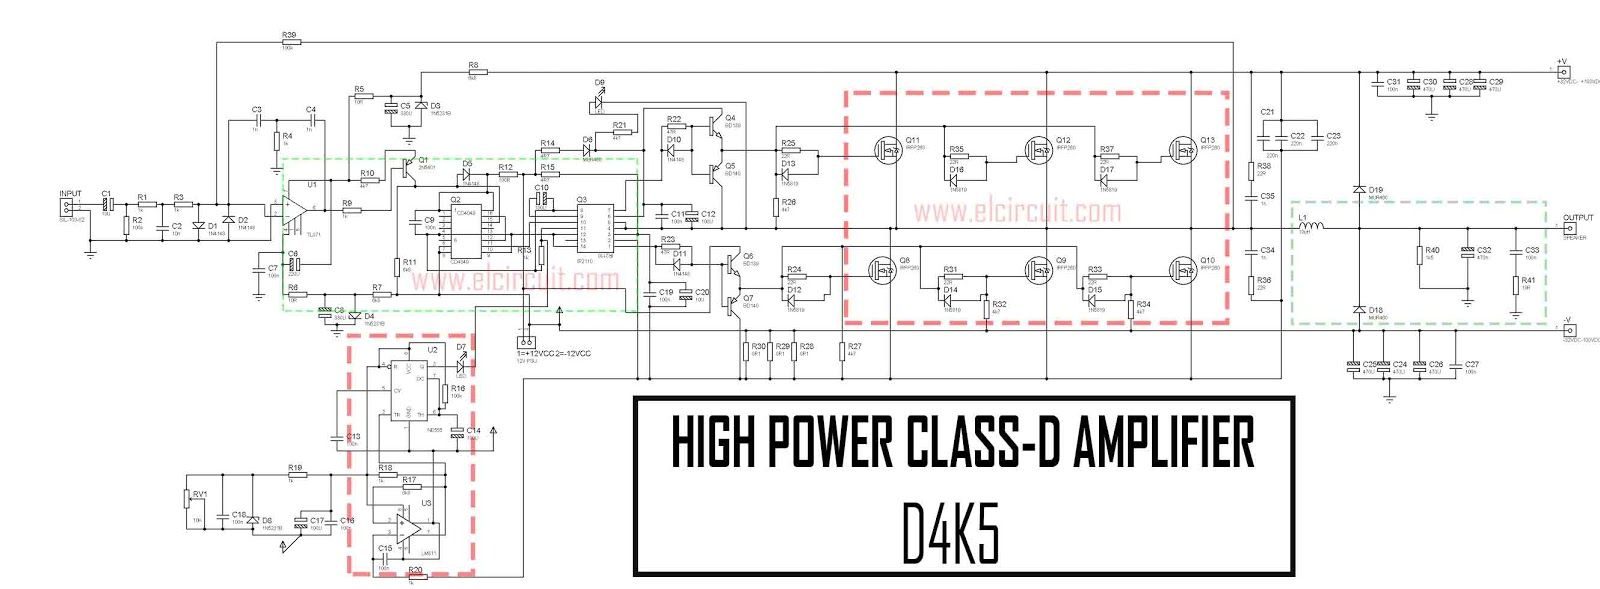 Ocl Power Amplifier Circuit Mj15003mj15004 Diy And Crafts 300w Mosfet Amp Hifi Class Ab By K1530j201 Diagram D D4k5